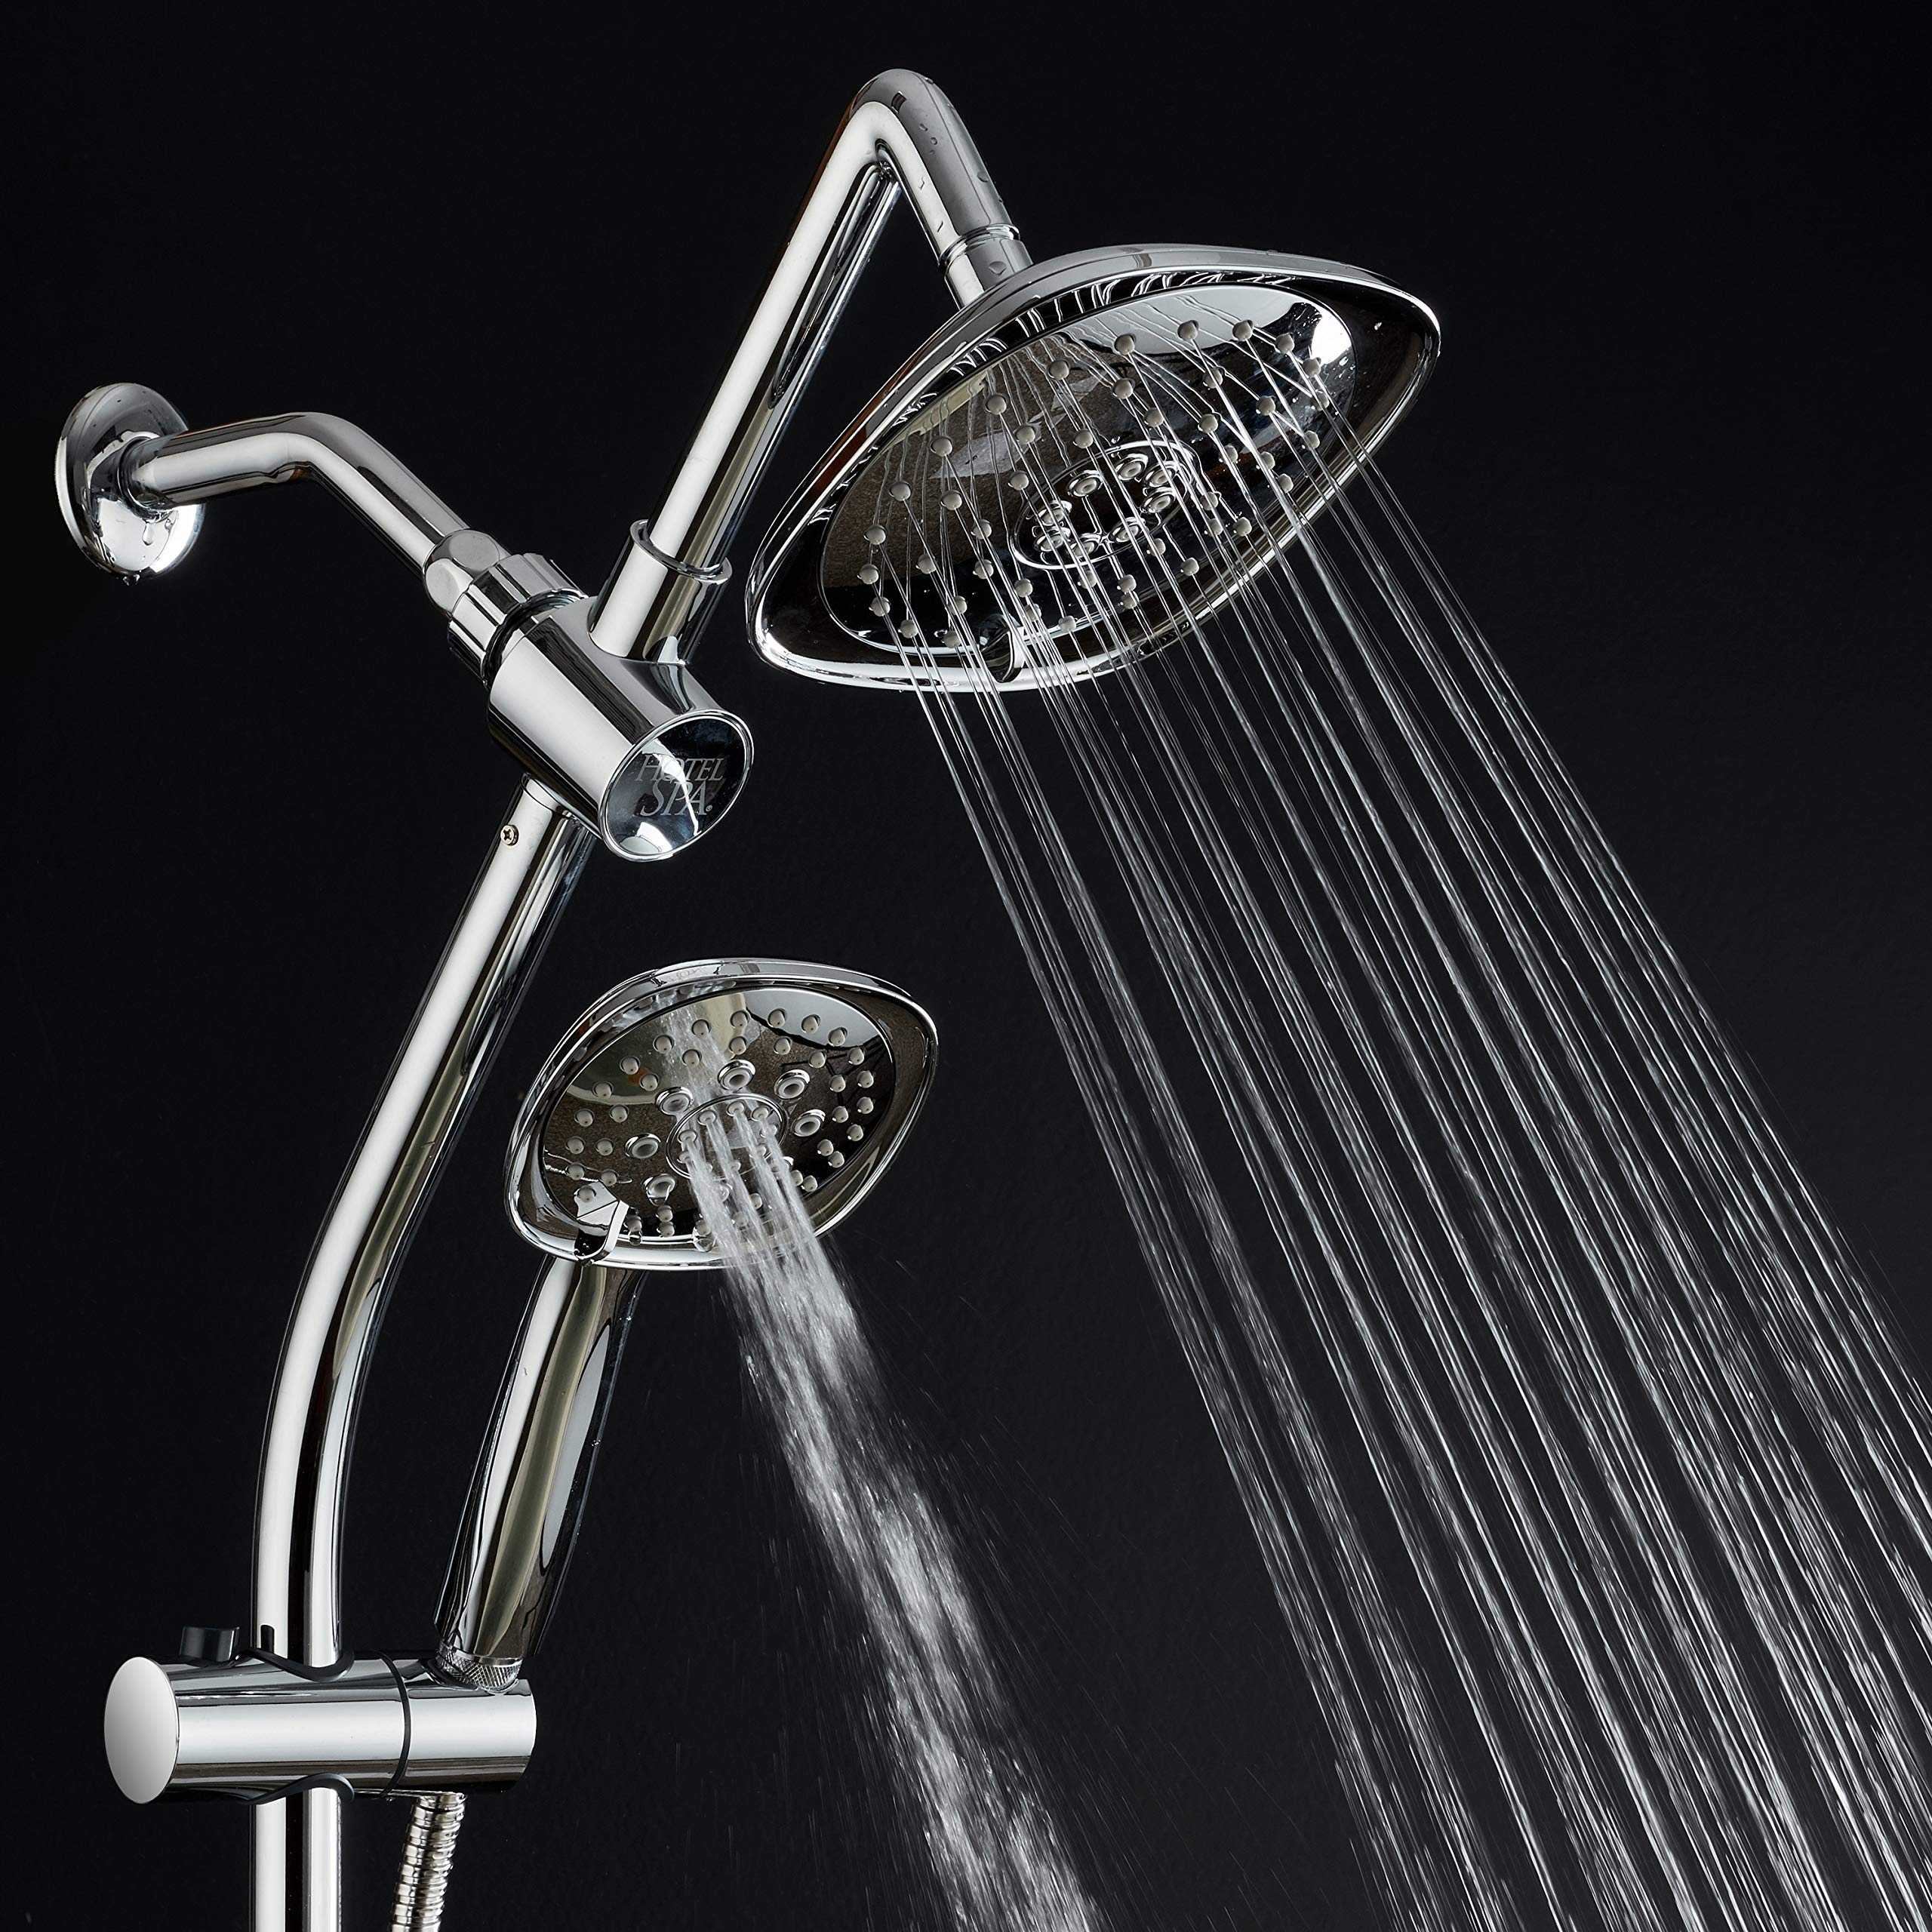 Spa Station 34'' Adjustable Drill-Free Slide Bar with 48-setting Showerhead Combo & Height Extension Arm / 3-way Square Rain & Handheld Shower Head/Low Reach Diverter/Stainless Steel Hose/Chrome by Hotel Spa (Image #4)